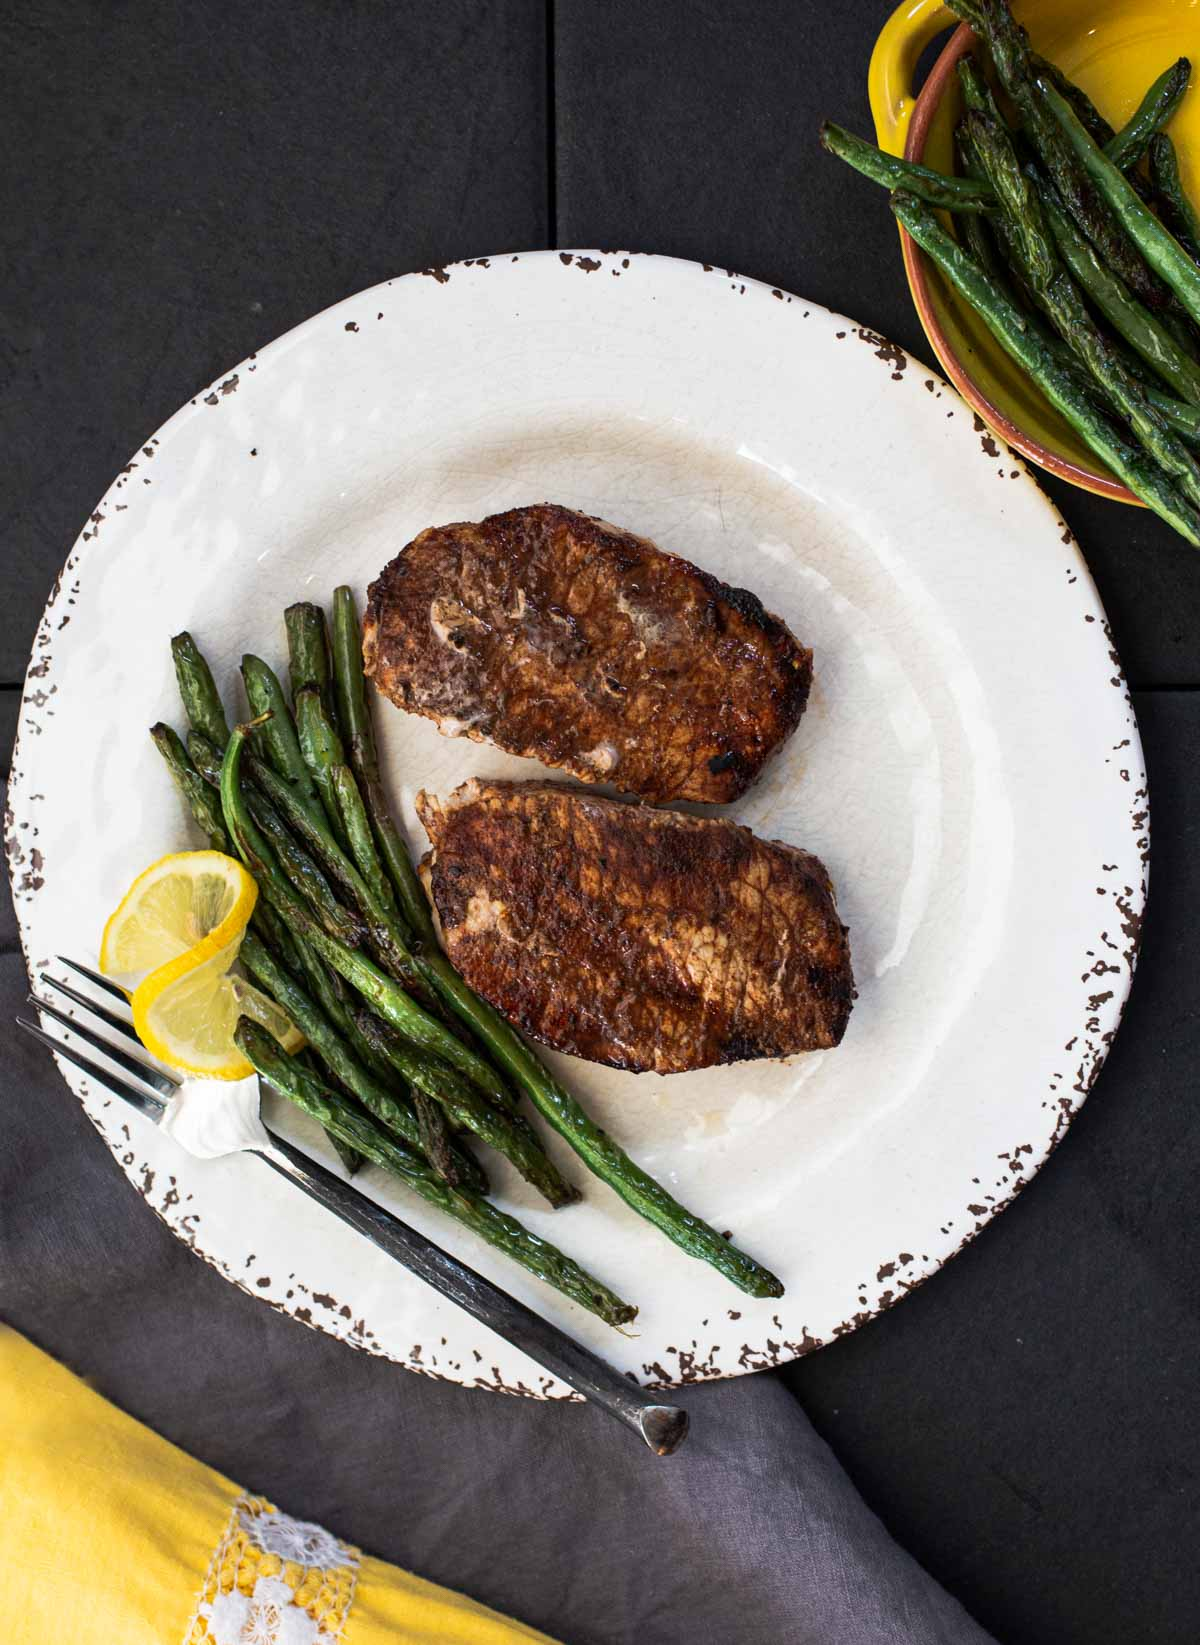 Cocoa chile powder rubbed grilled pork chops with sauteed green beans on a rustic white plate with a wedge of lemon